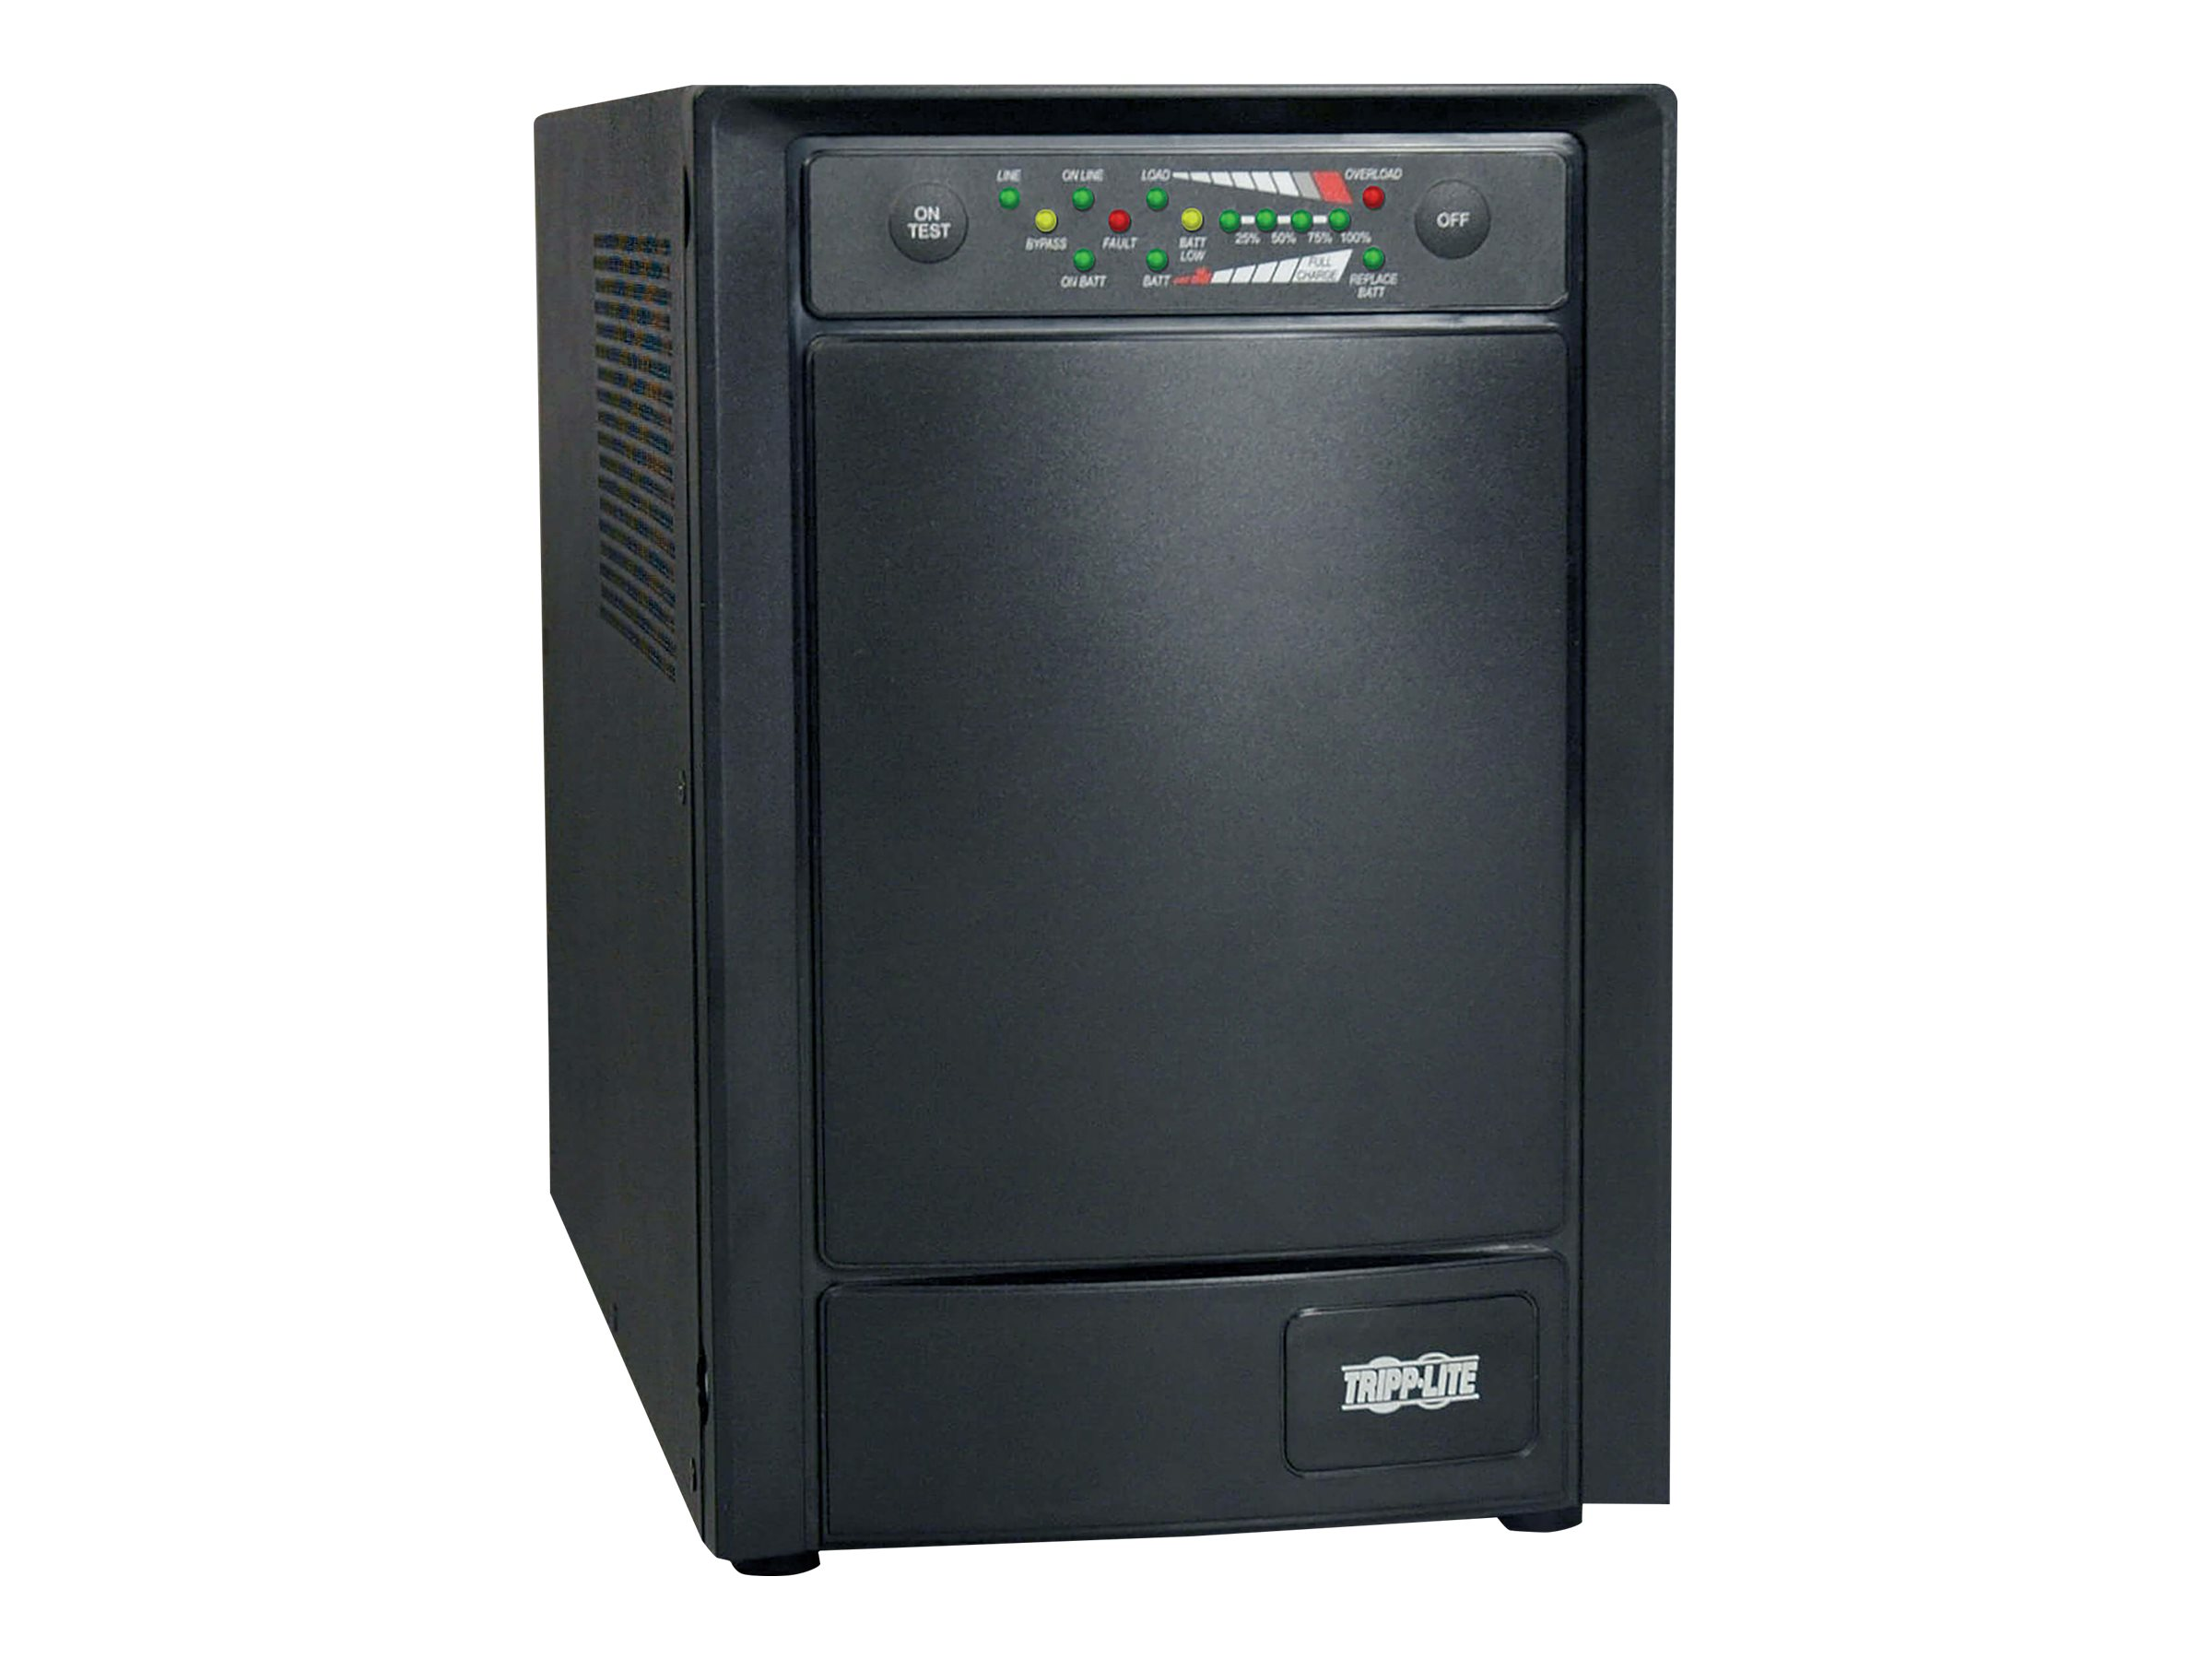 Tripp Lite UPS Smart Online 1000VA 800W Tower 100V - 120V USB DB9 SNMP RT - UPS - 800 Watt - 1000 VA